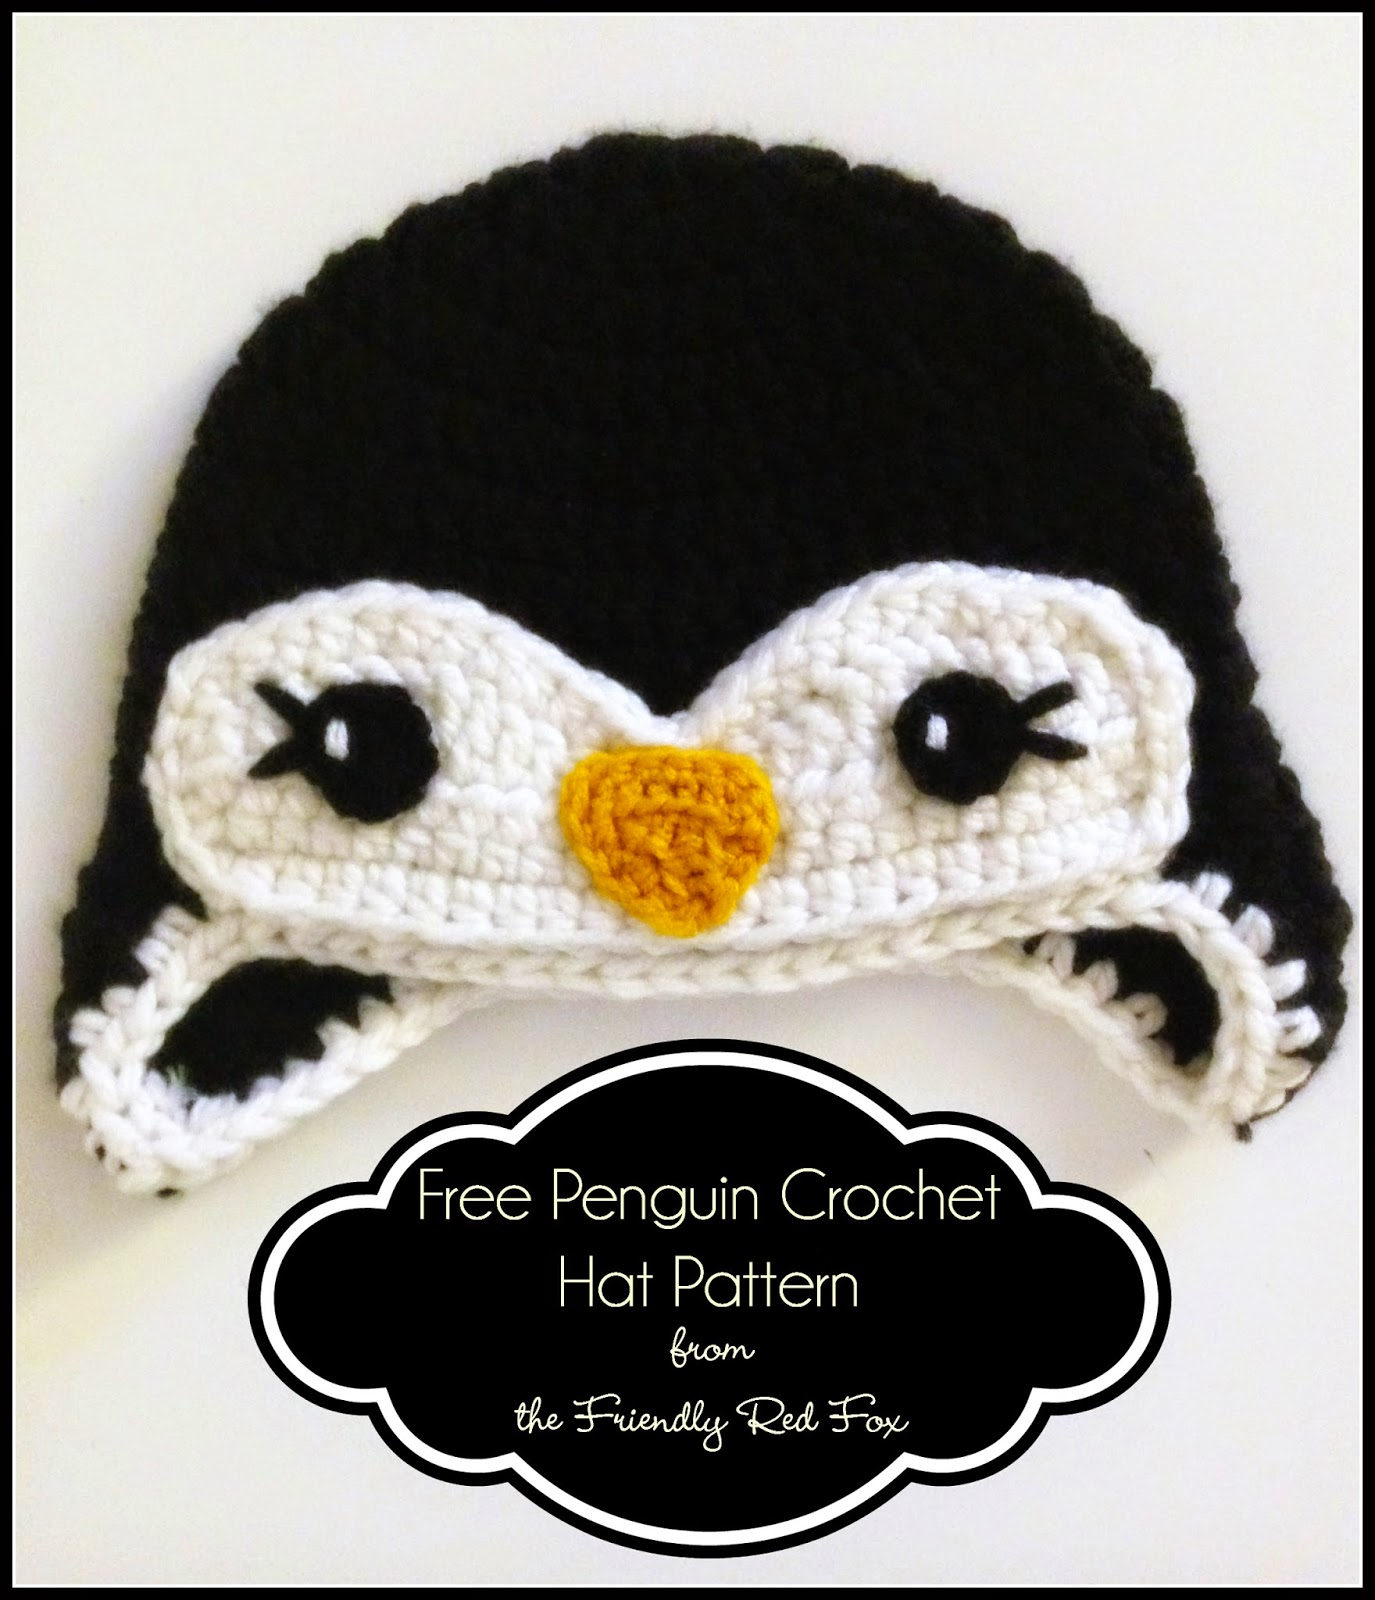 Free Penguin Crochet Hat Pattern - The Friendly Red Fox